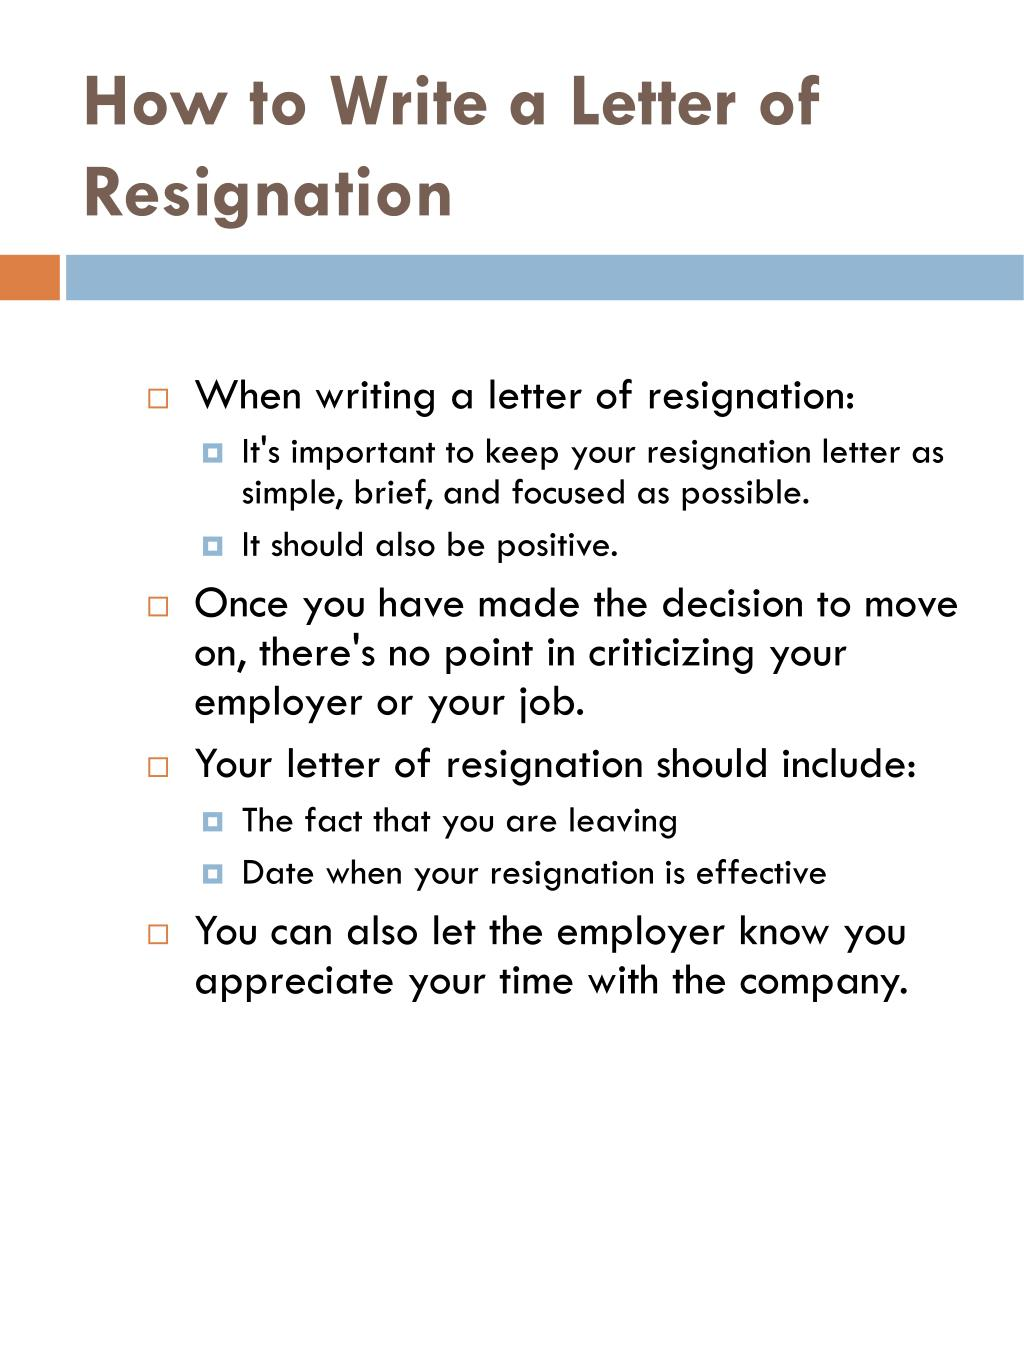 How to Write a Letter of Resignation